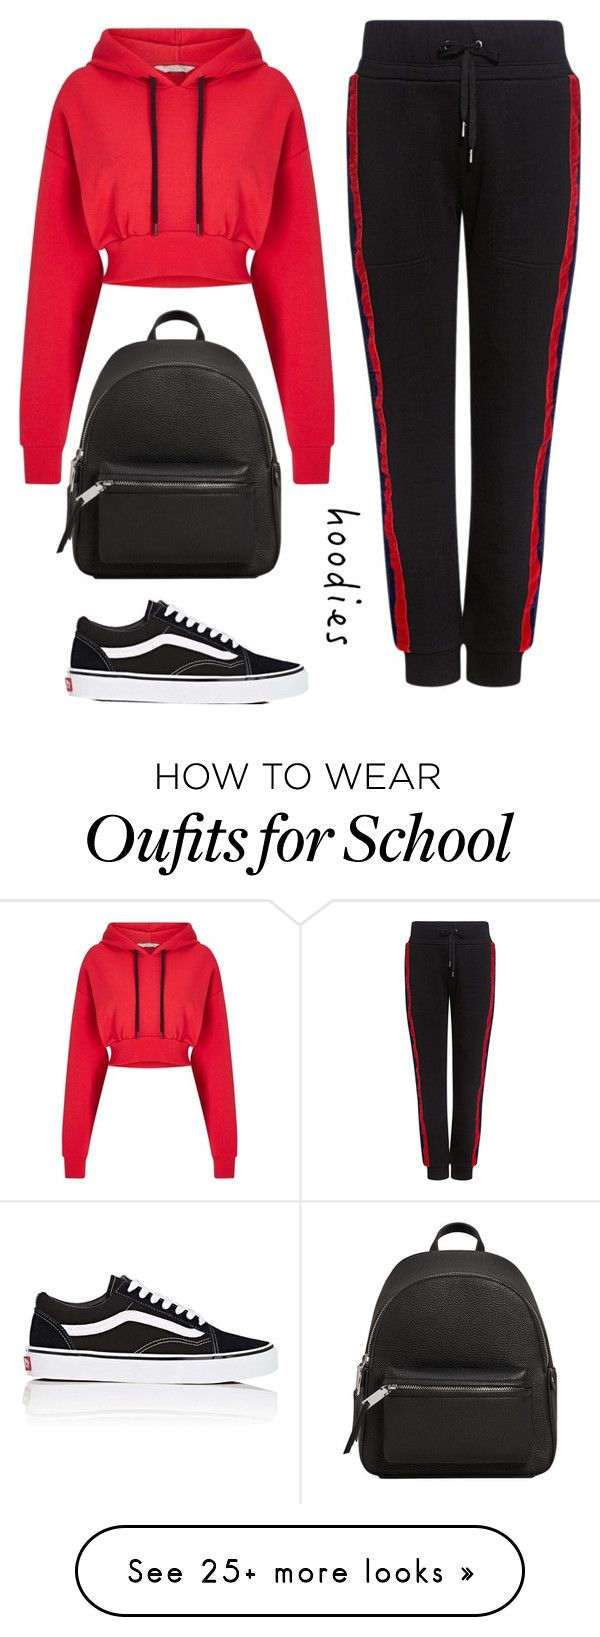 """get comfy #hoodie"" by dias123 on Polyvore featuring Miss Selfridge, Public School, Vans, MANGO and Hoodies"